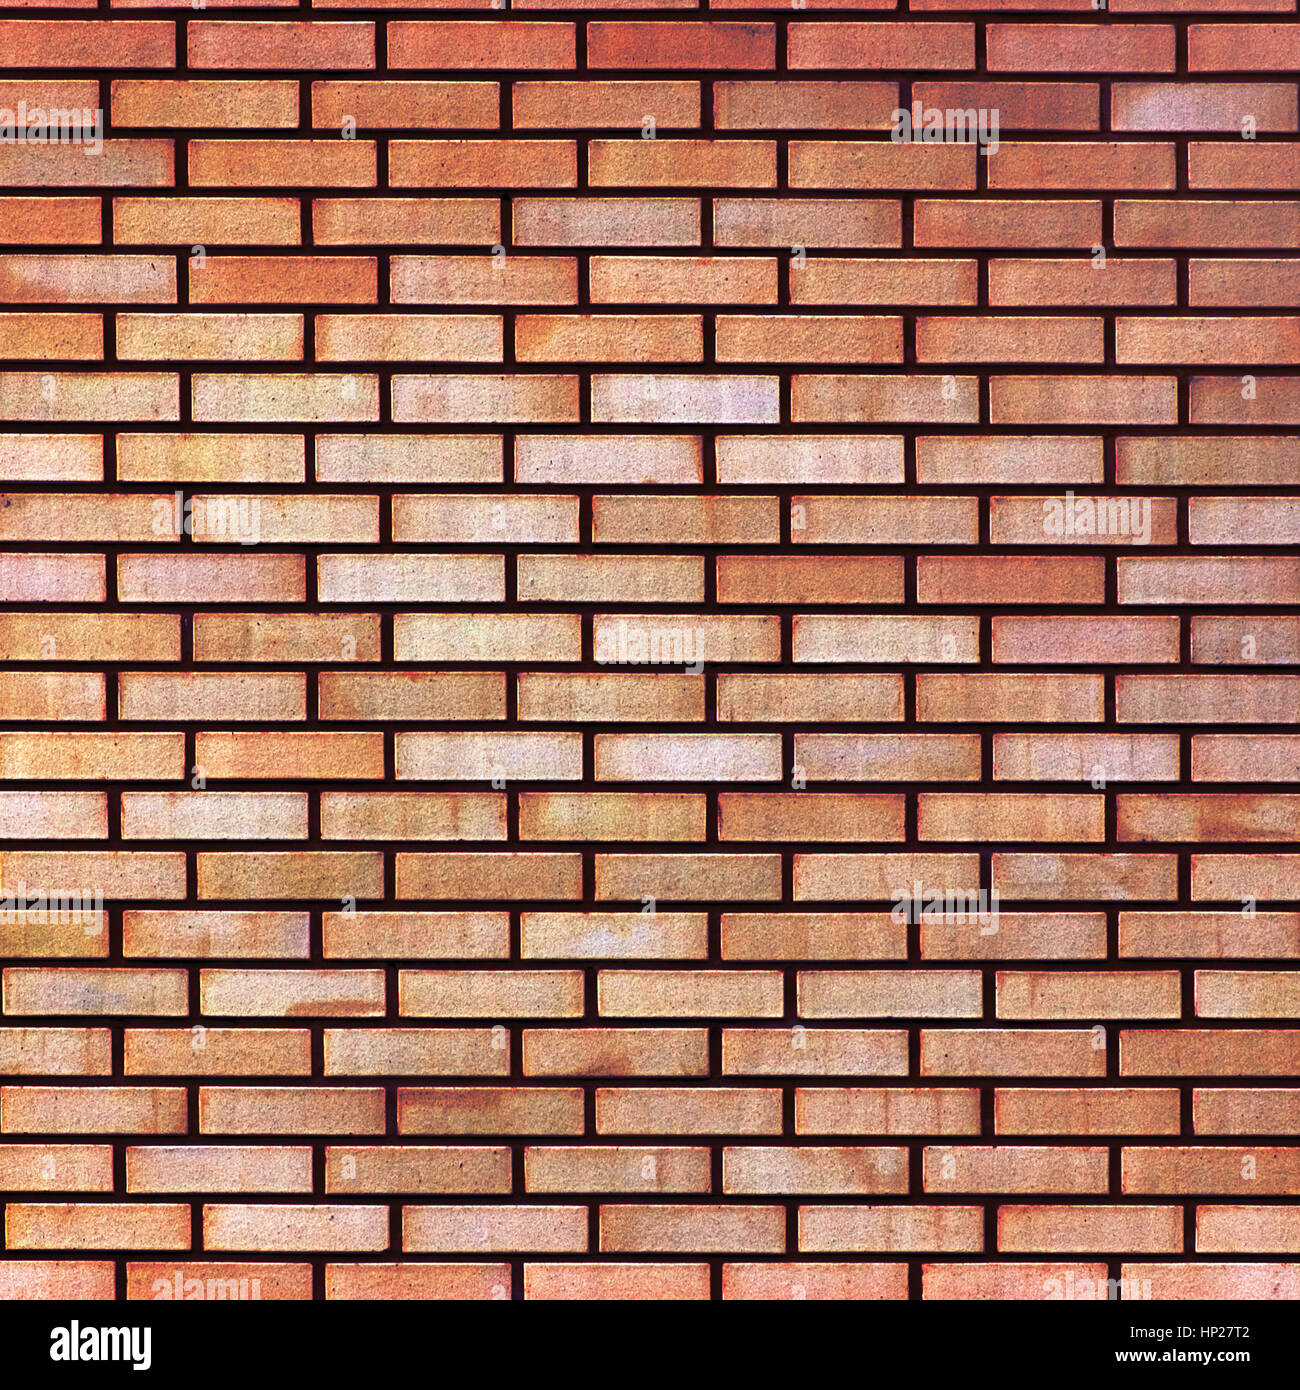 Red Yellow Beige Tan Fine Brick Wall Texture Background Large